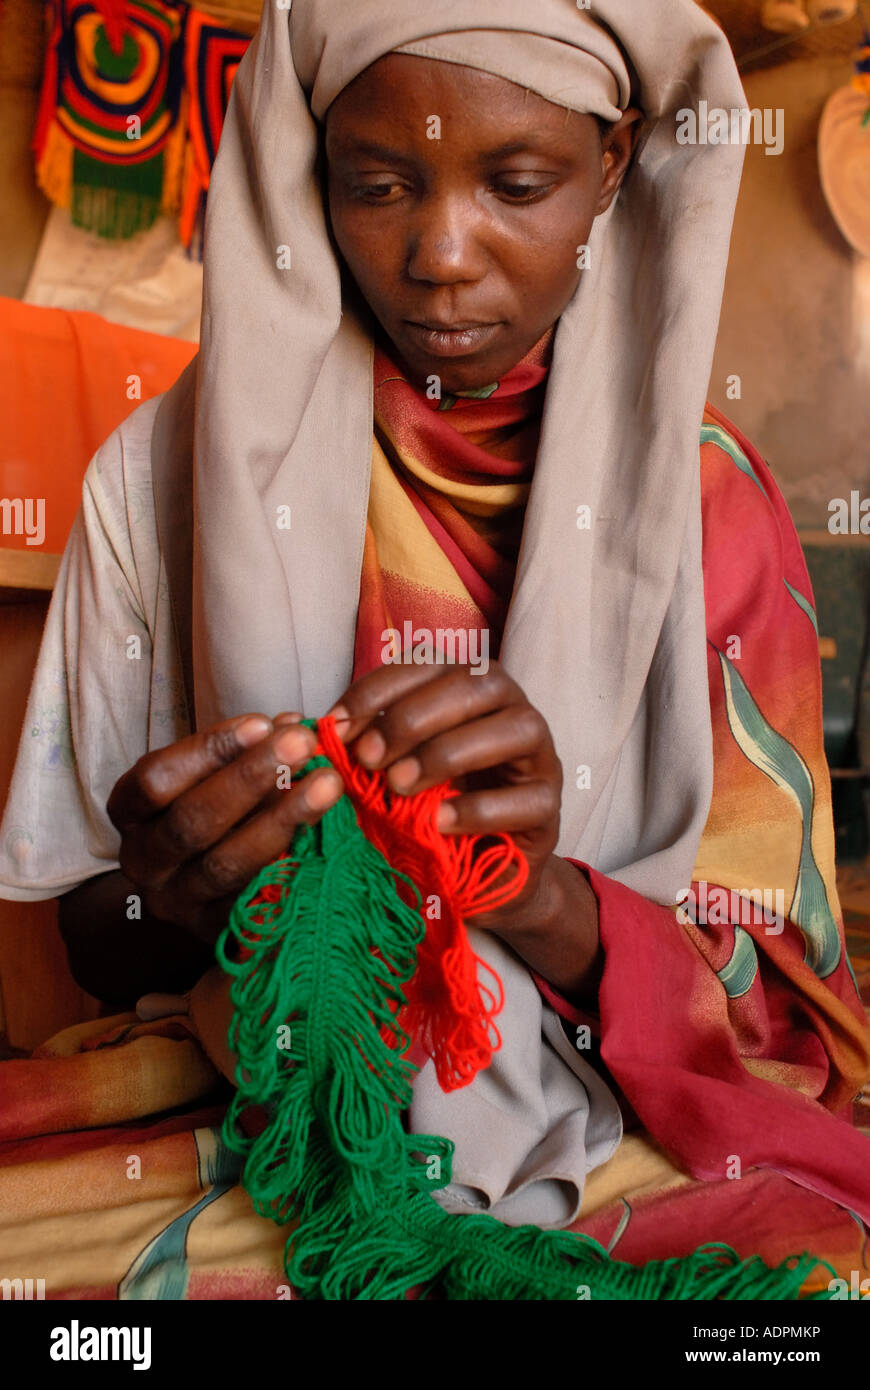 Africa.Toulum camp for Sudanese refugees .Eastern Chad .Nedifs Adam Mahamat, community assistant, crocheting - Stock Image